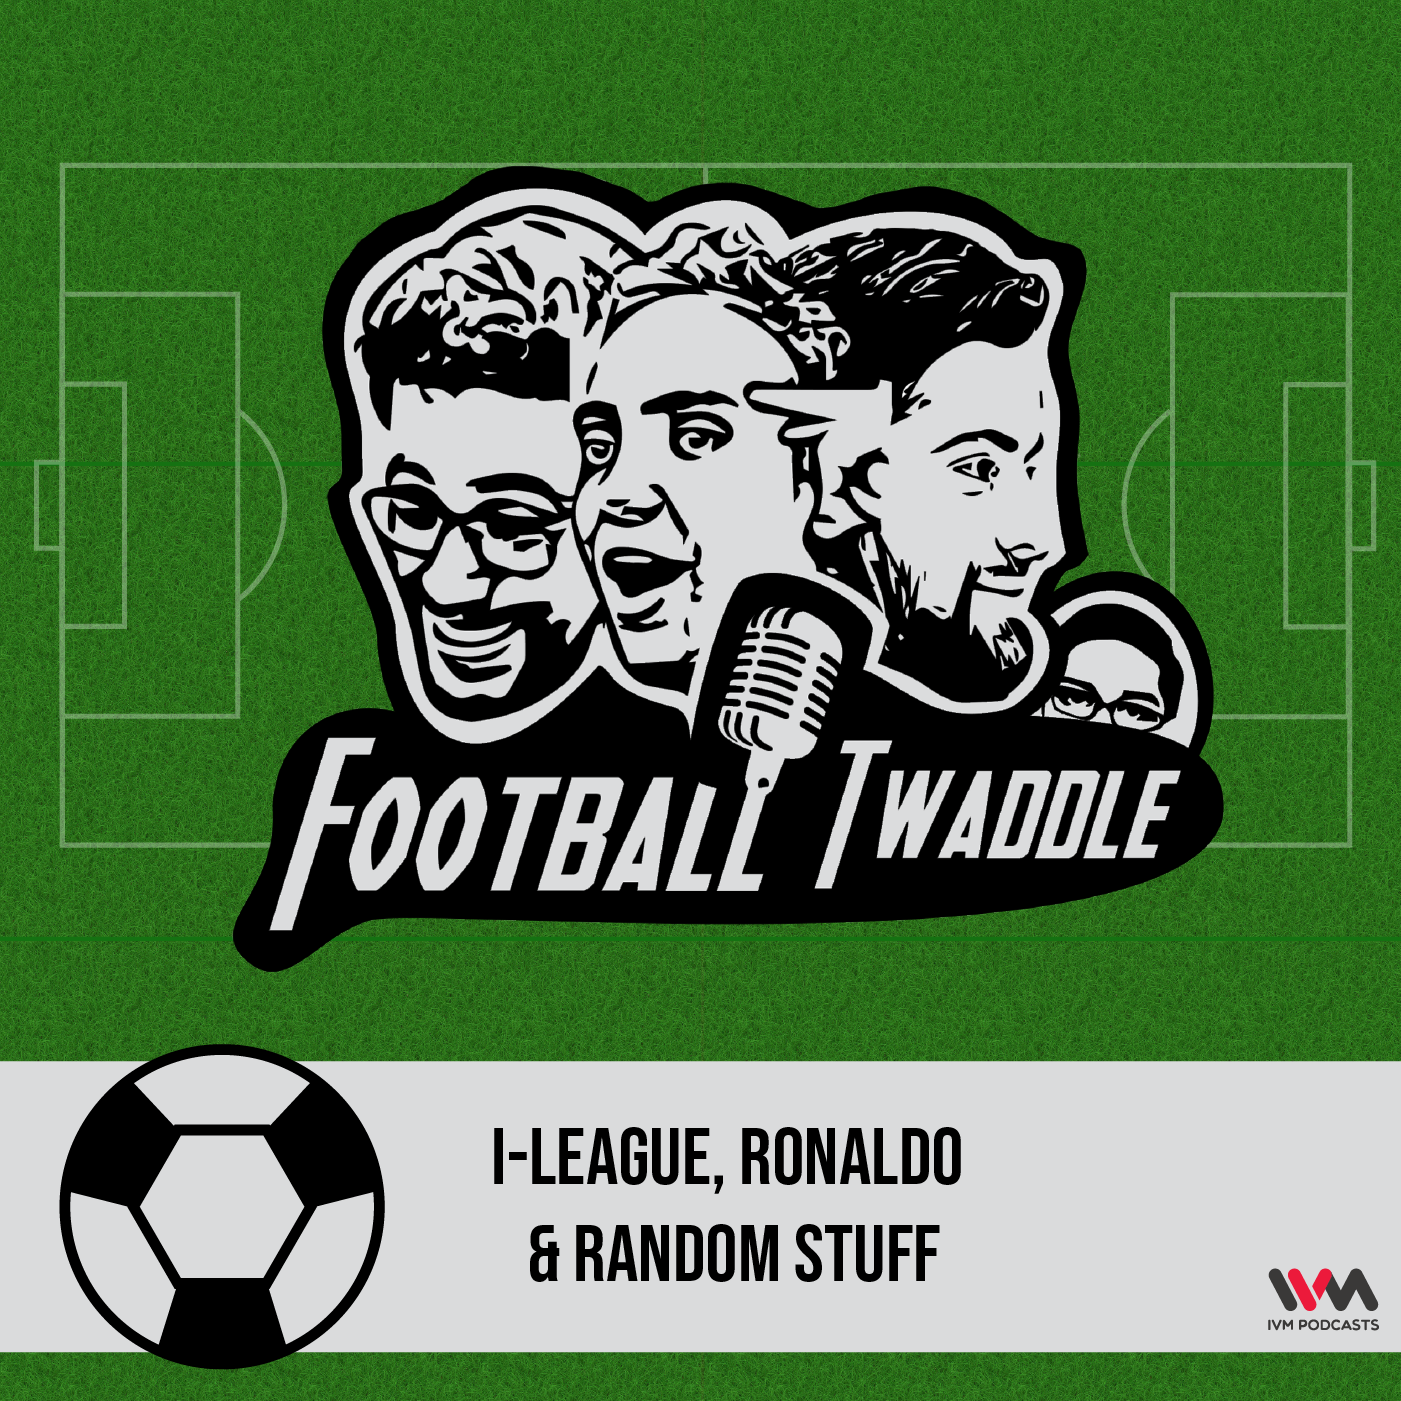 I-league, Ronaldo & Random Stuff